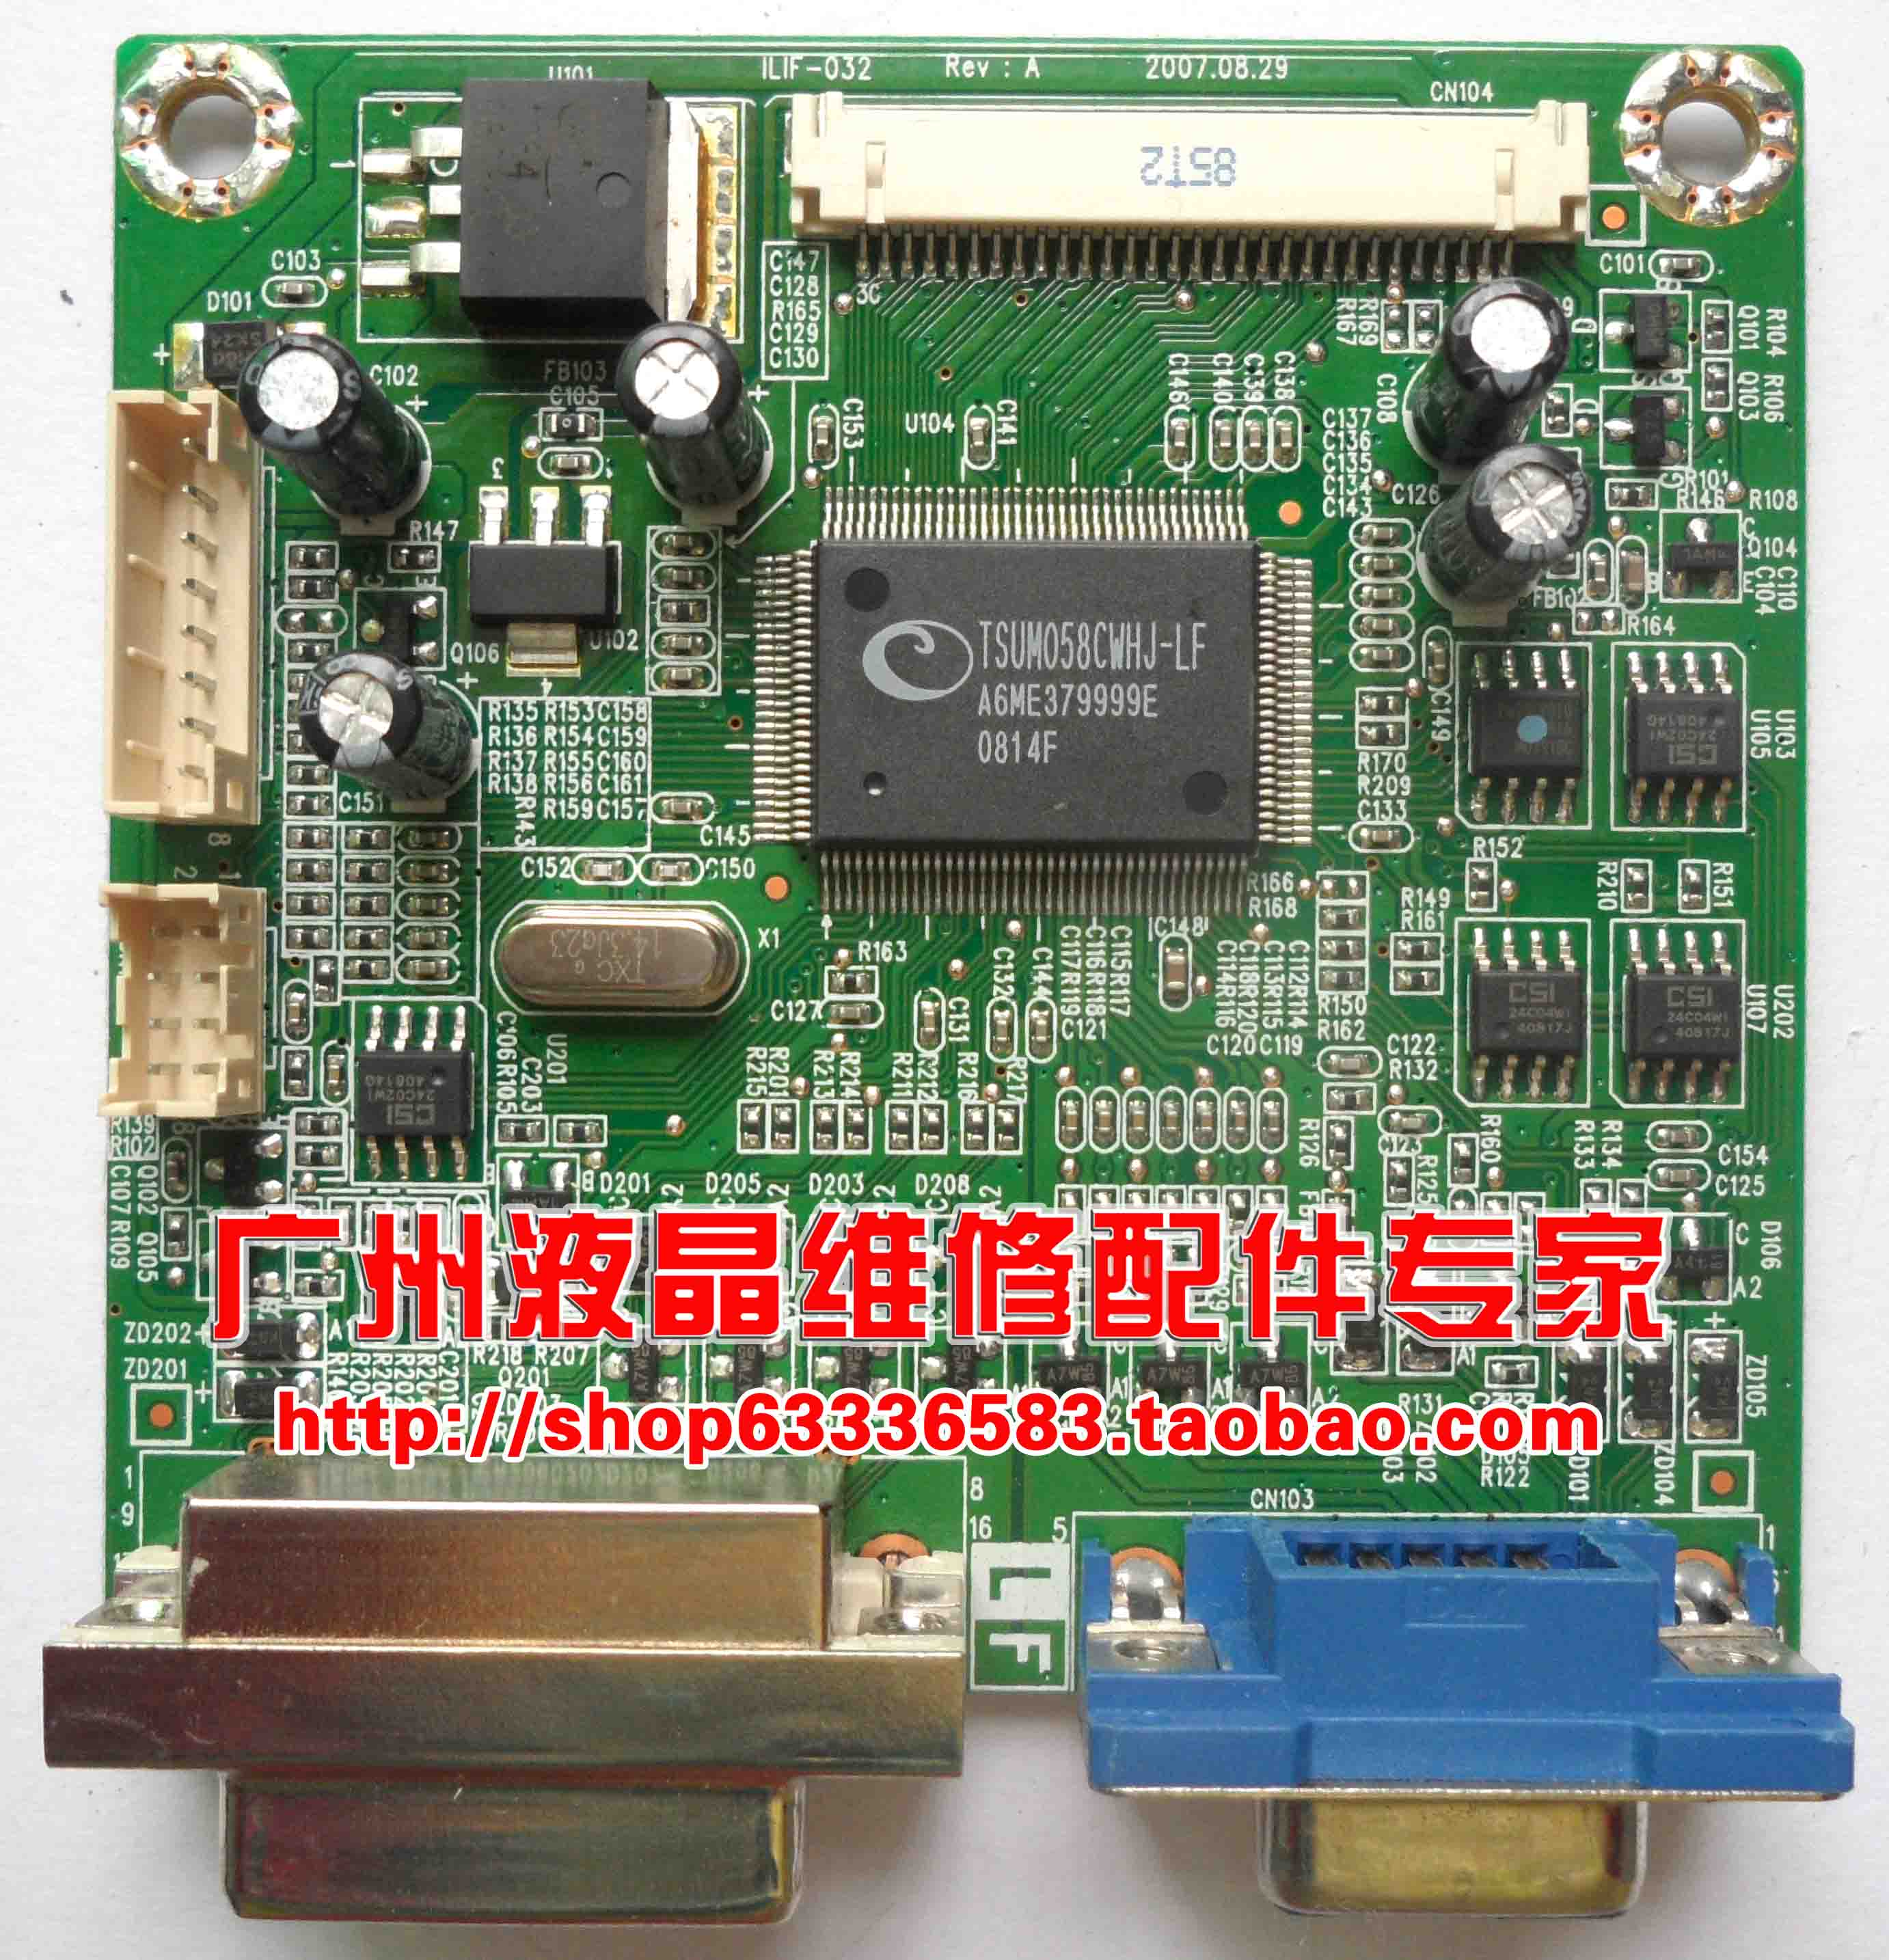 Free Shipping>Original 100% Tested Working  VX2255wm-4 VSC9B1F driver board ILIF-032 491261300100R motherboard free shipping 370 6072 03 540 6706 01 server fan for sun netra440 n440 tested working